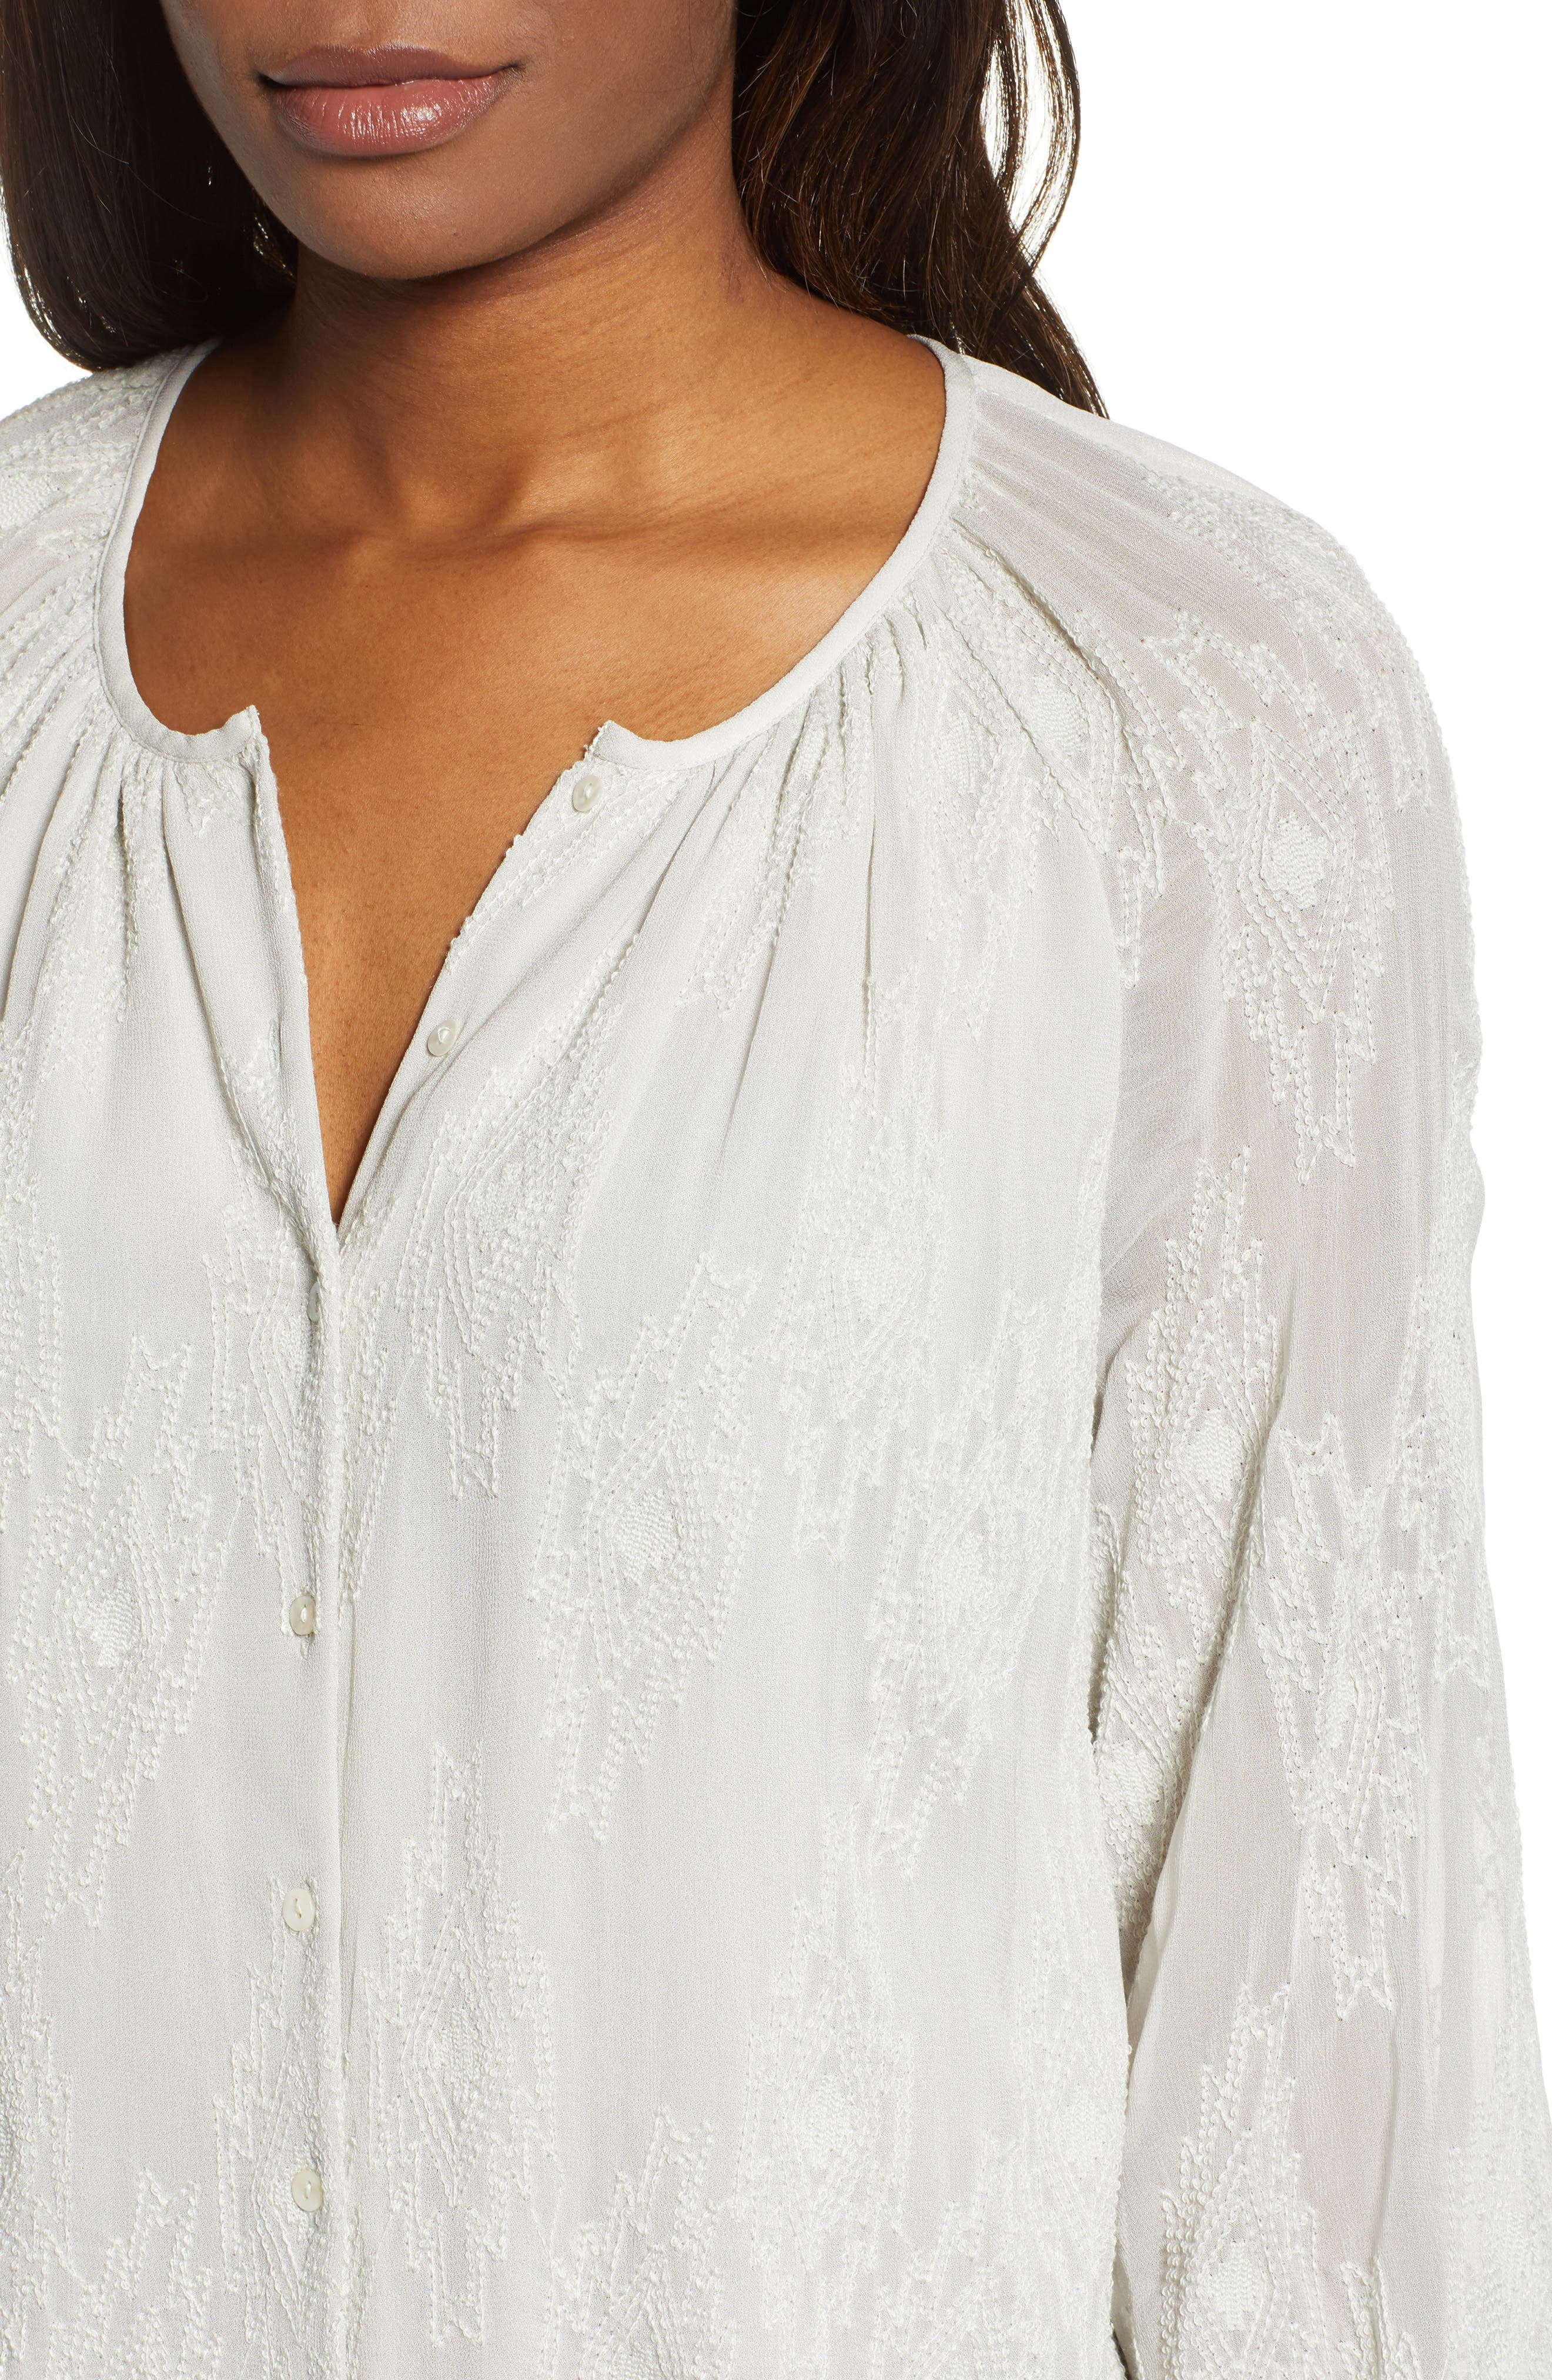 LUCKY BRAND, Geo Embroidered Top, Alternate thumbnail 4, color, PALE BLUE